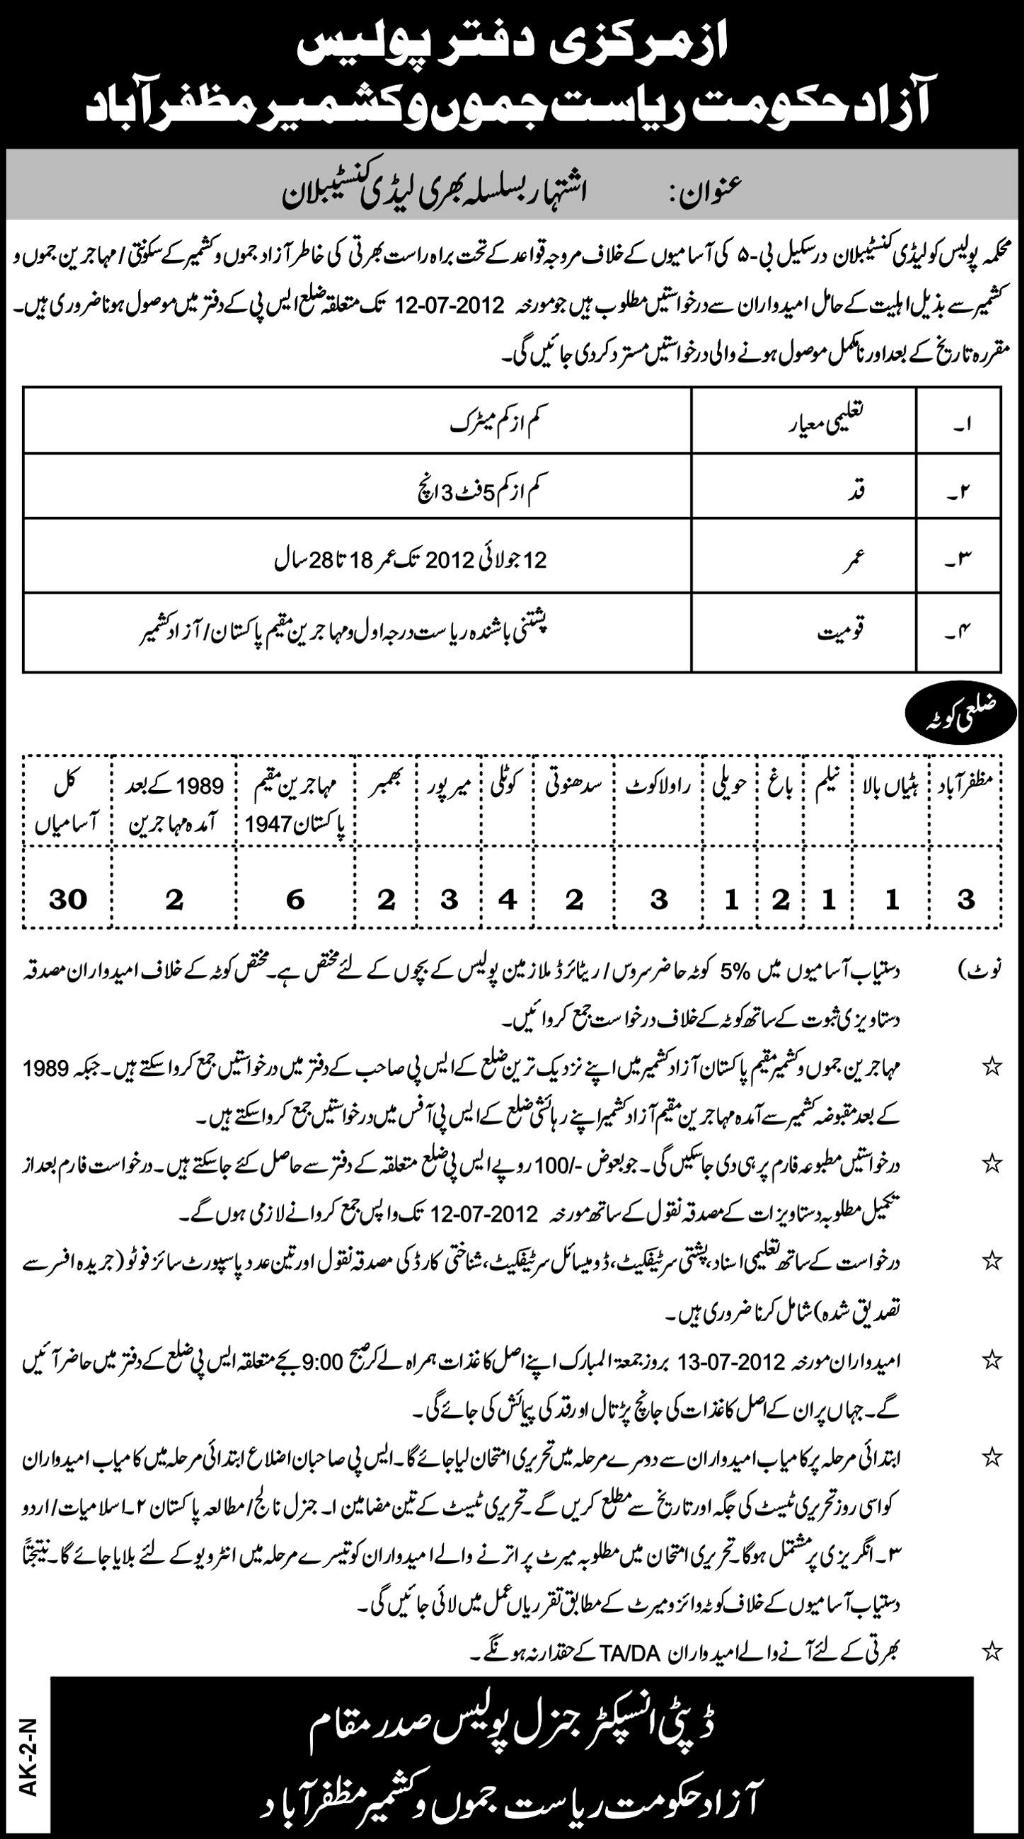 jobs in police constables in azad kashmir Lady Police Constable Jobs In Azad Kashmir